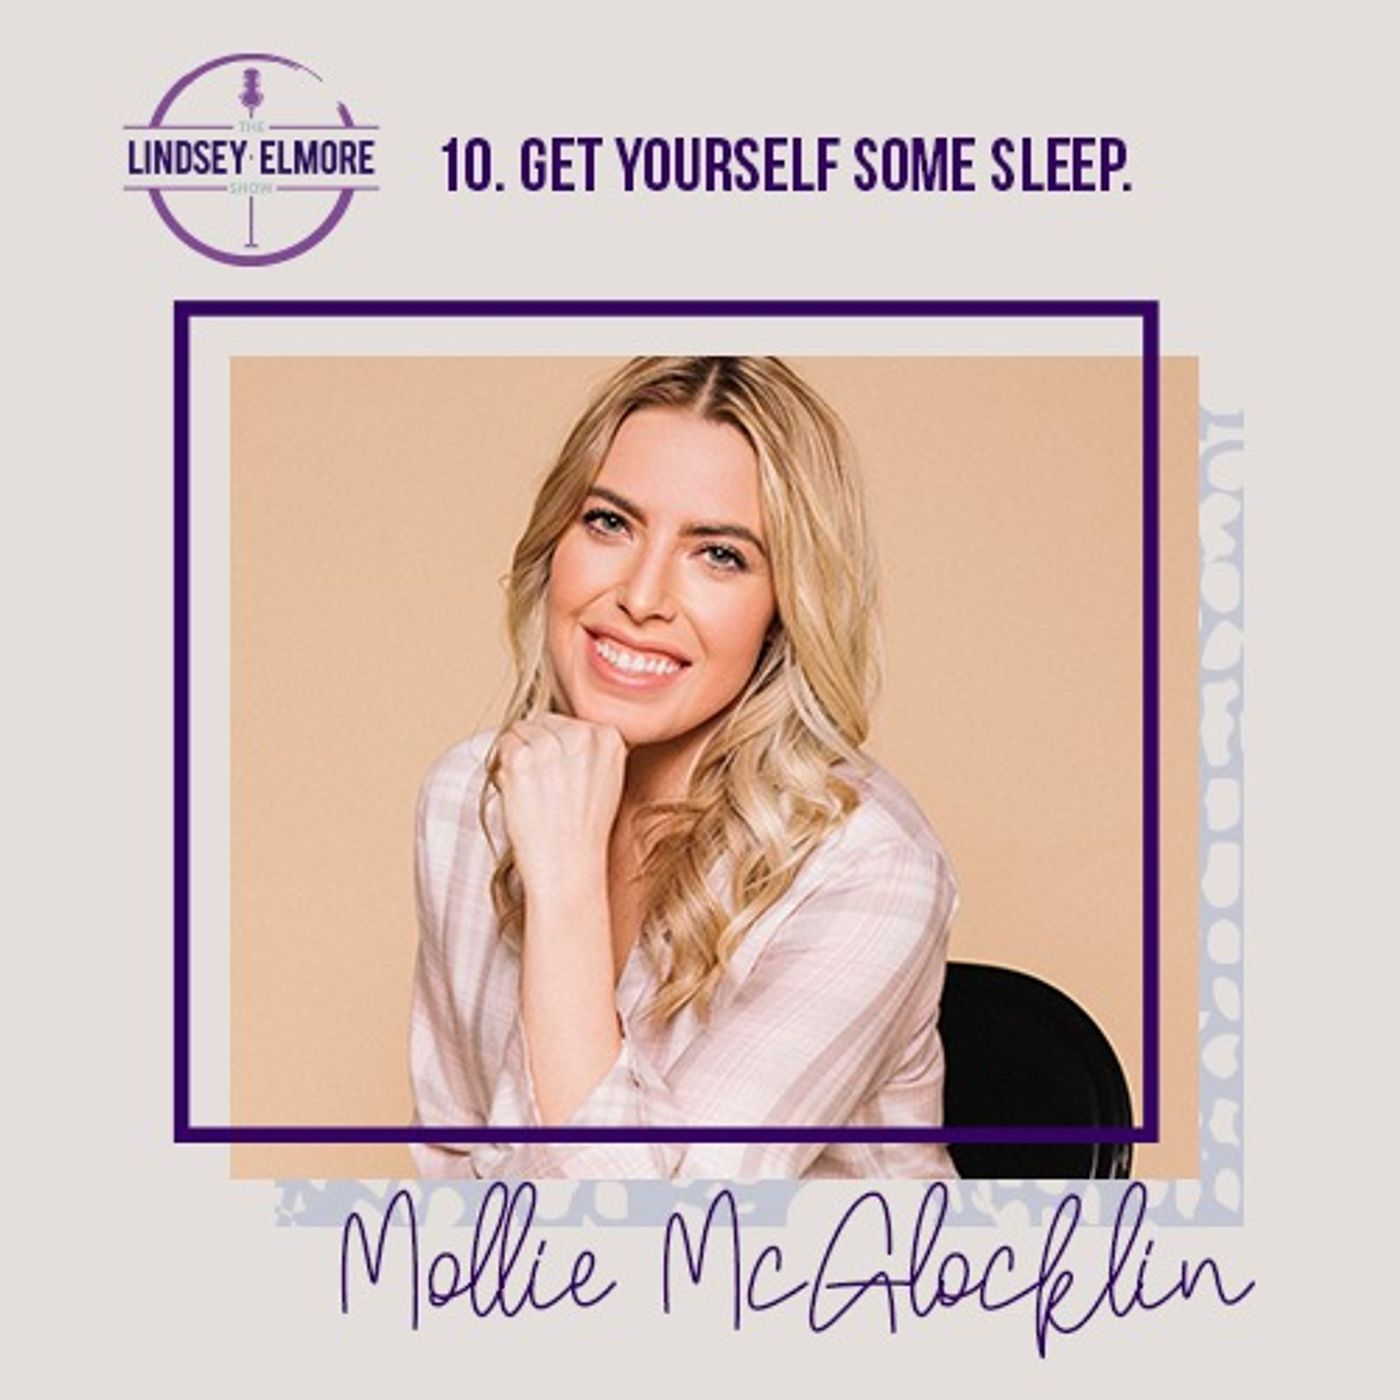 Get yourself some sleep. An interview with Mollie McGlocklin.